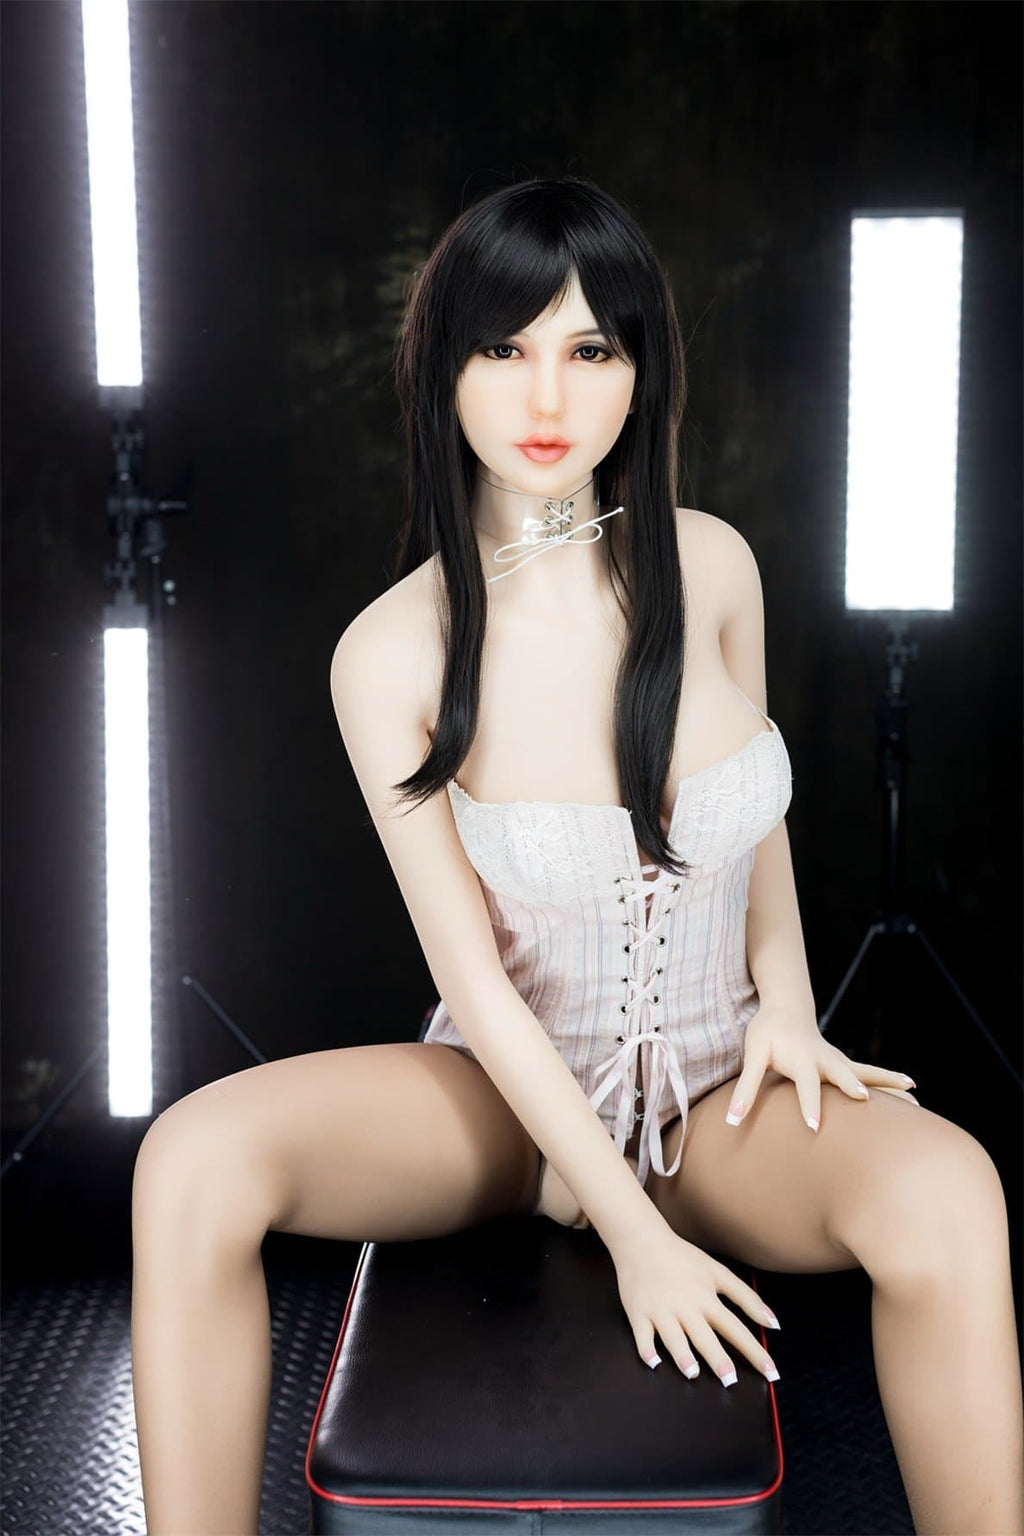 chyna 163cm black hair japanese big boobs athletic tpe wm sex doll